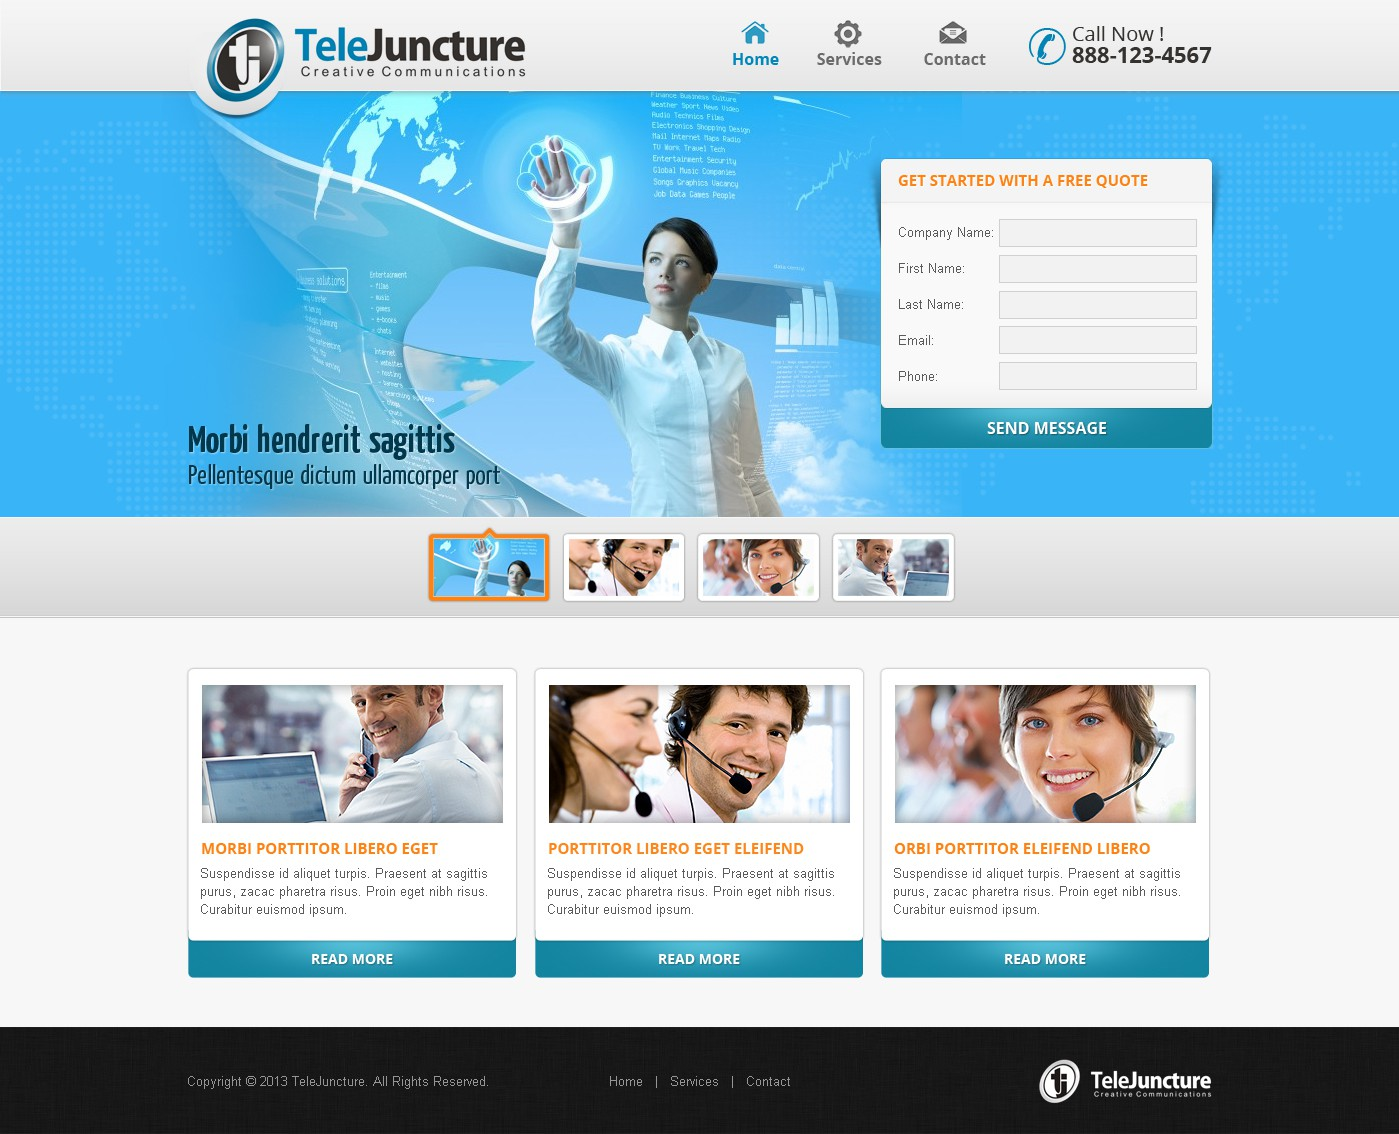 New website design wanted for http://www.telejuncture.com